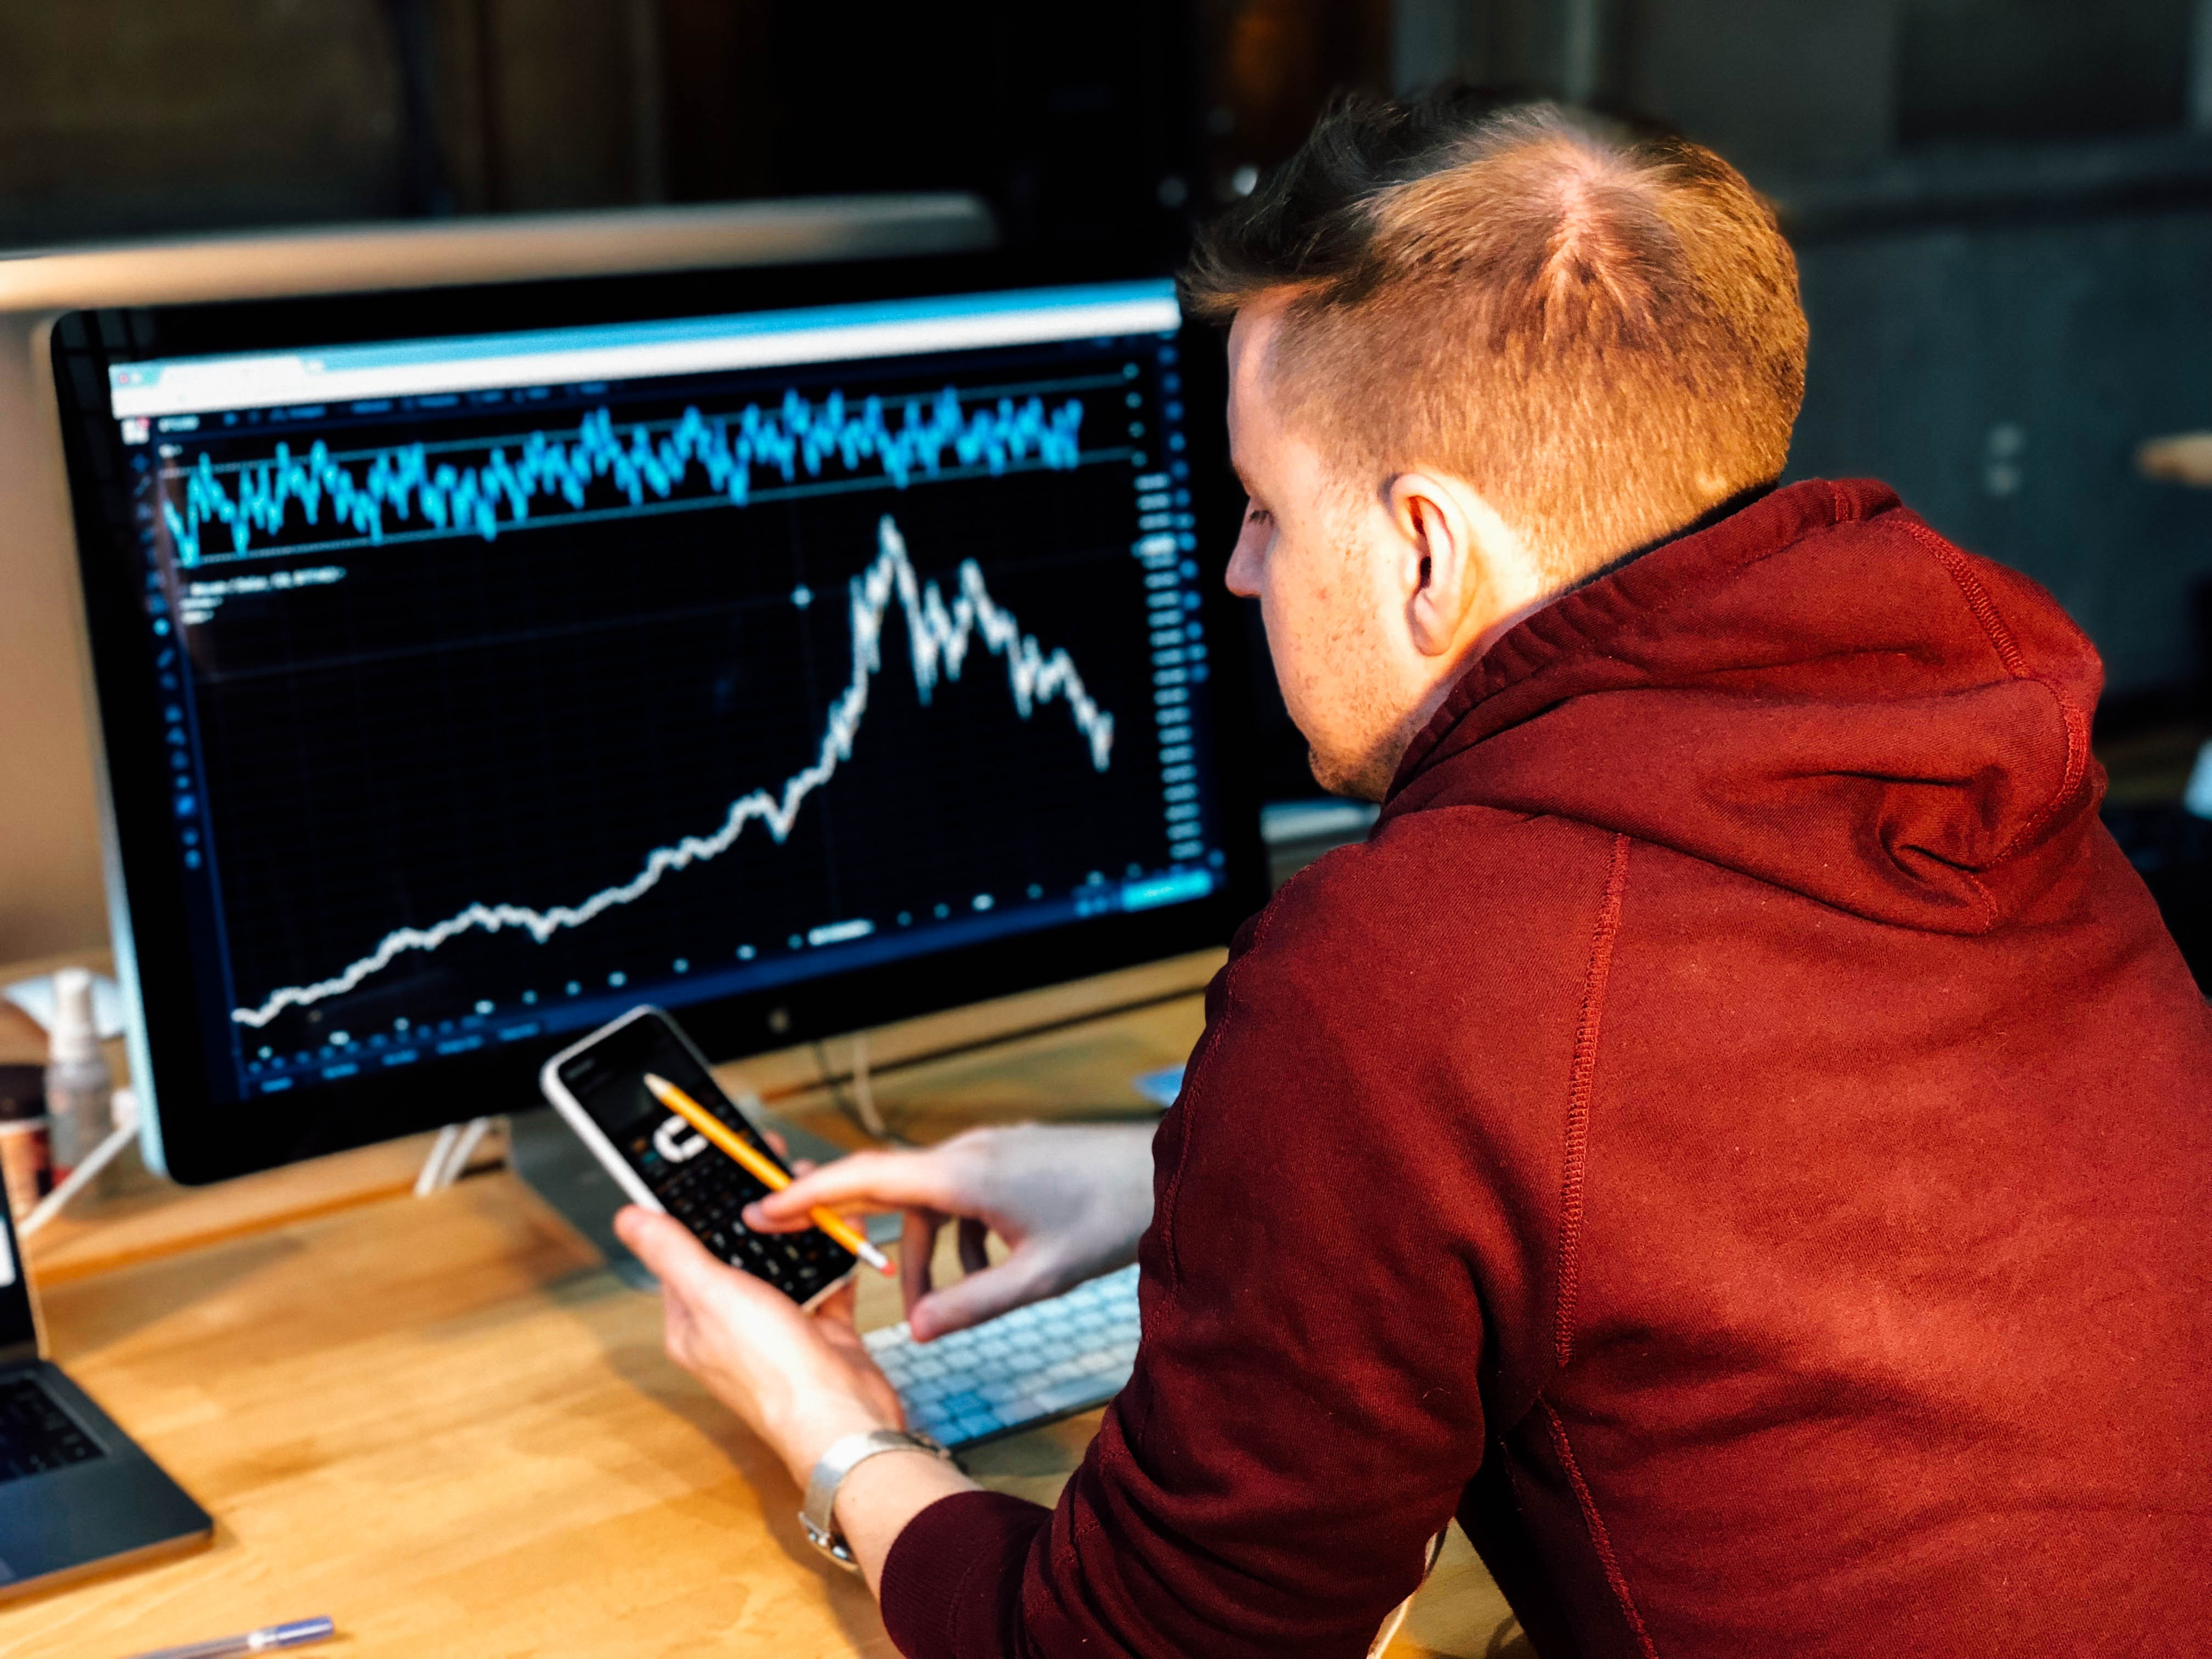 10 Crucial Tips On How To Make it As a Forex Trader: For Beginners and Advanced Traders